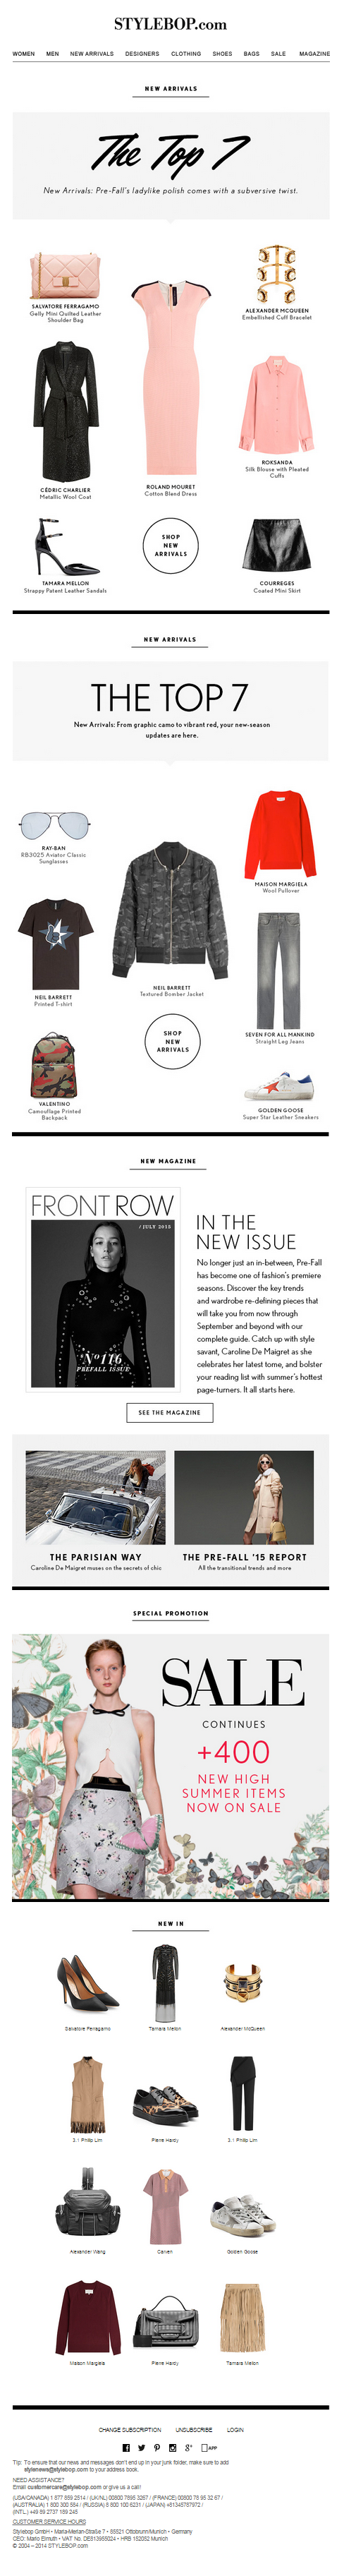 New Arrivals: Discover The Latest Styles +++ Front Row: The New Issue Is Online +++ Sale: 400 New High Summer Items Added - STYLEBOP.com | 07.07.2015